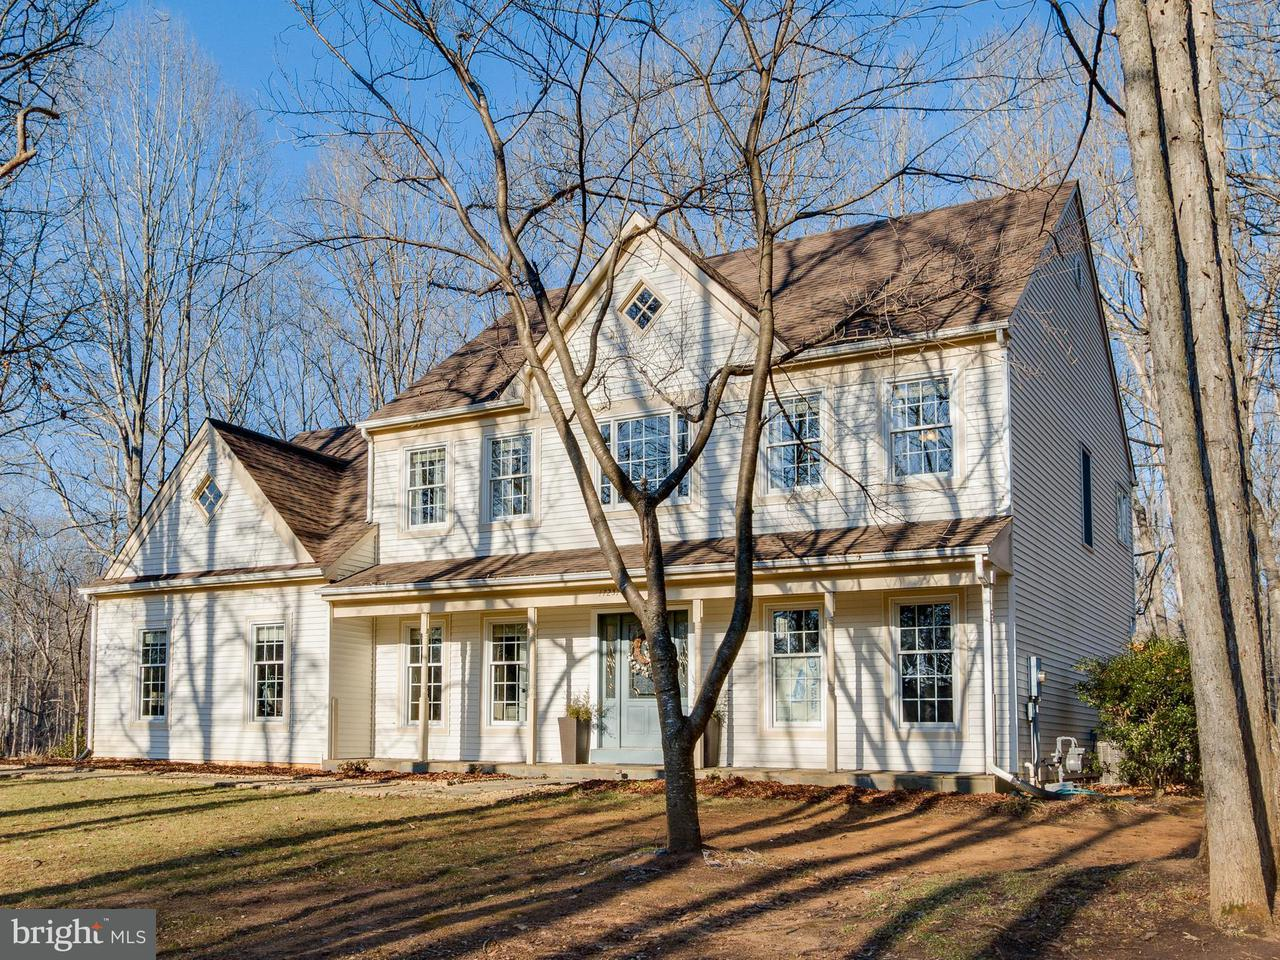 Single Family Home for Sale at 17237 Kent Court 17237 Kent Court Jeffersonton, Virginia 22724 United States